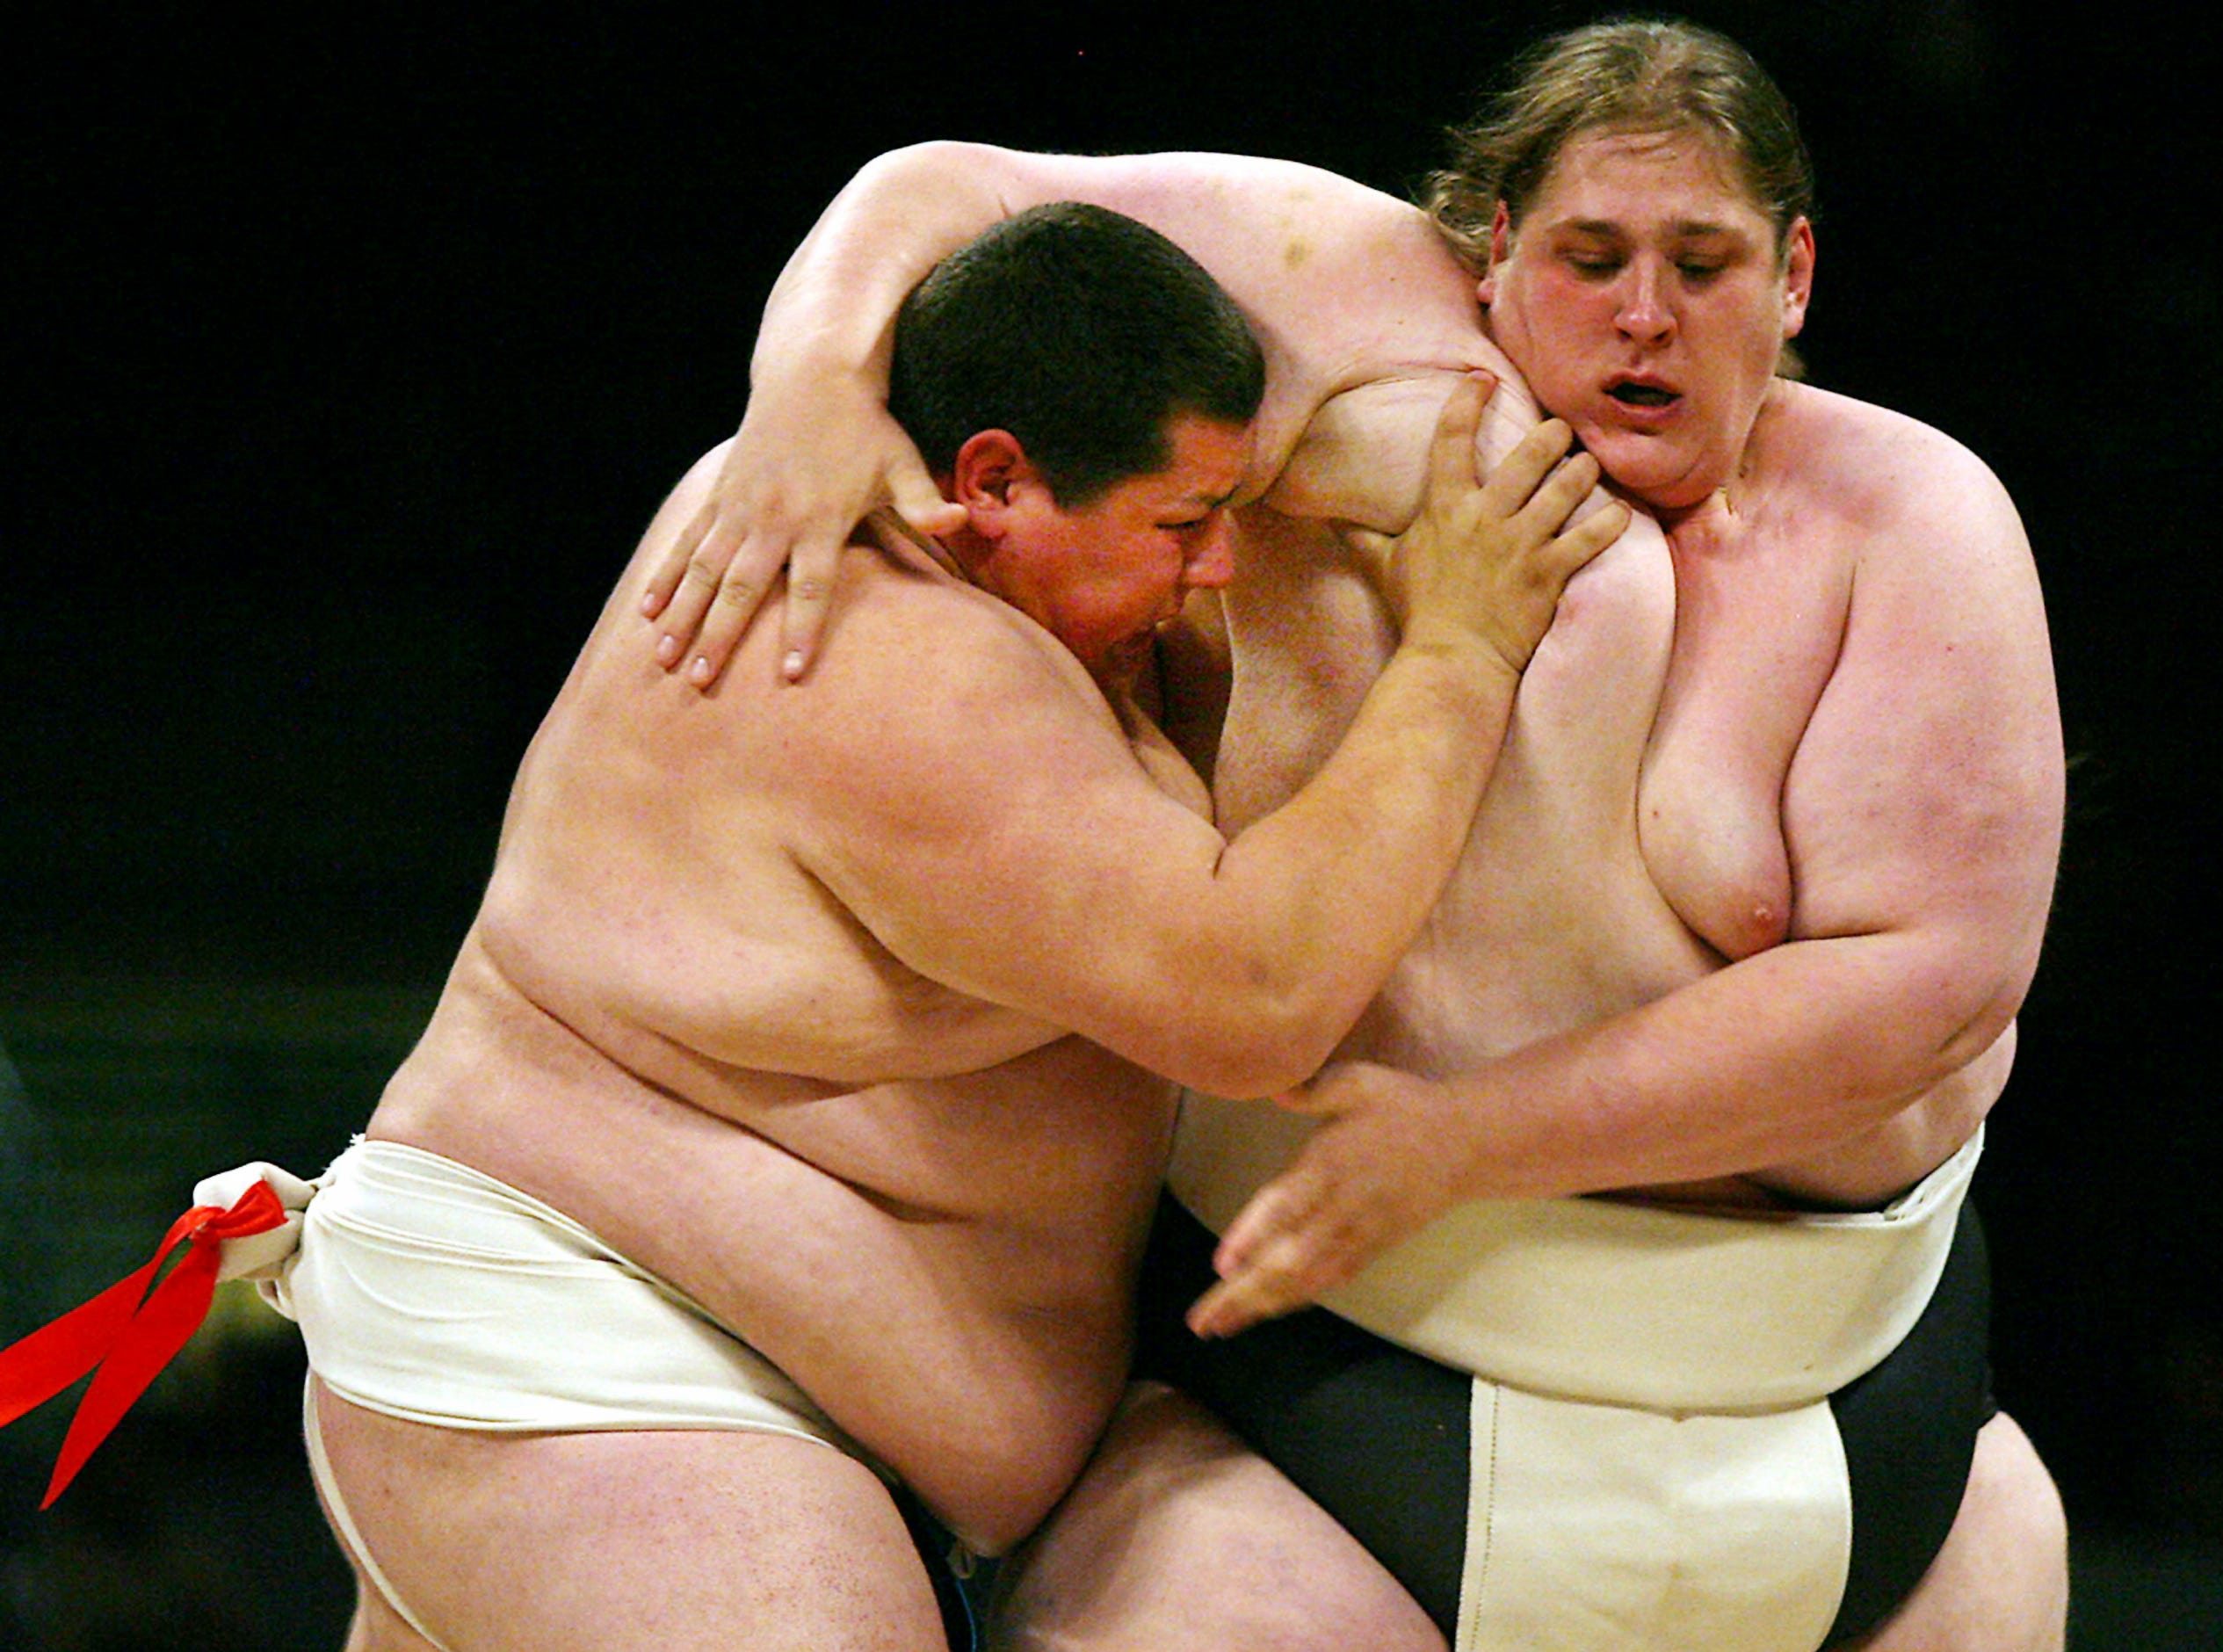 Sumo wrestlers battle it out during the World Sumo League at the Meadowlands Continental Arena. June 9, 2006, East Rutherford, NJ